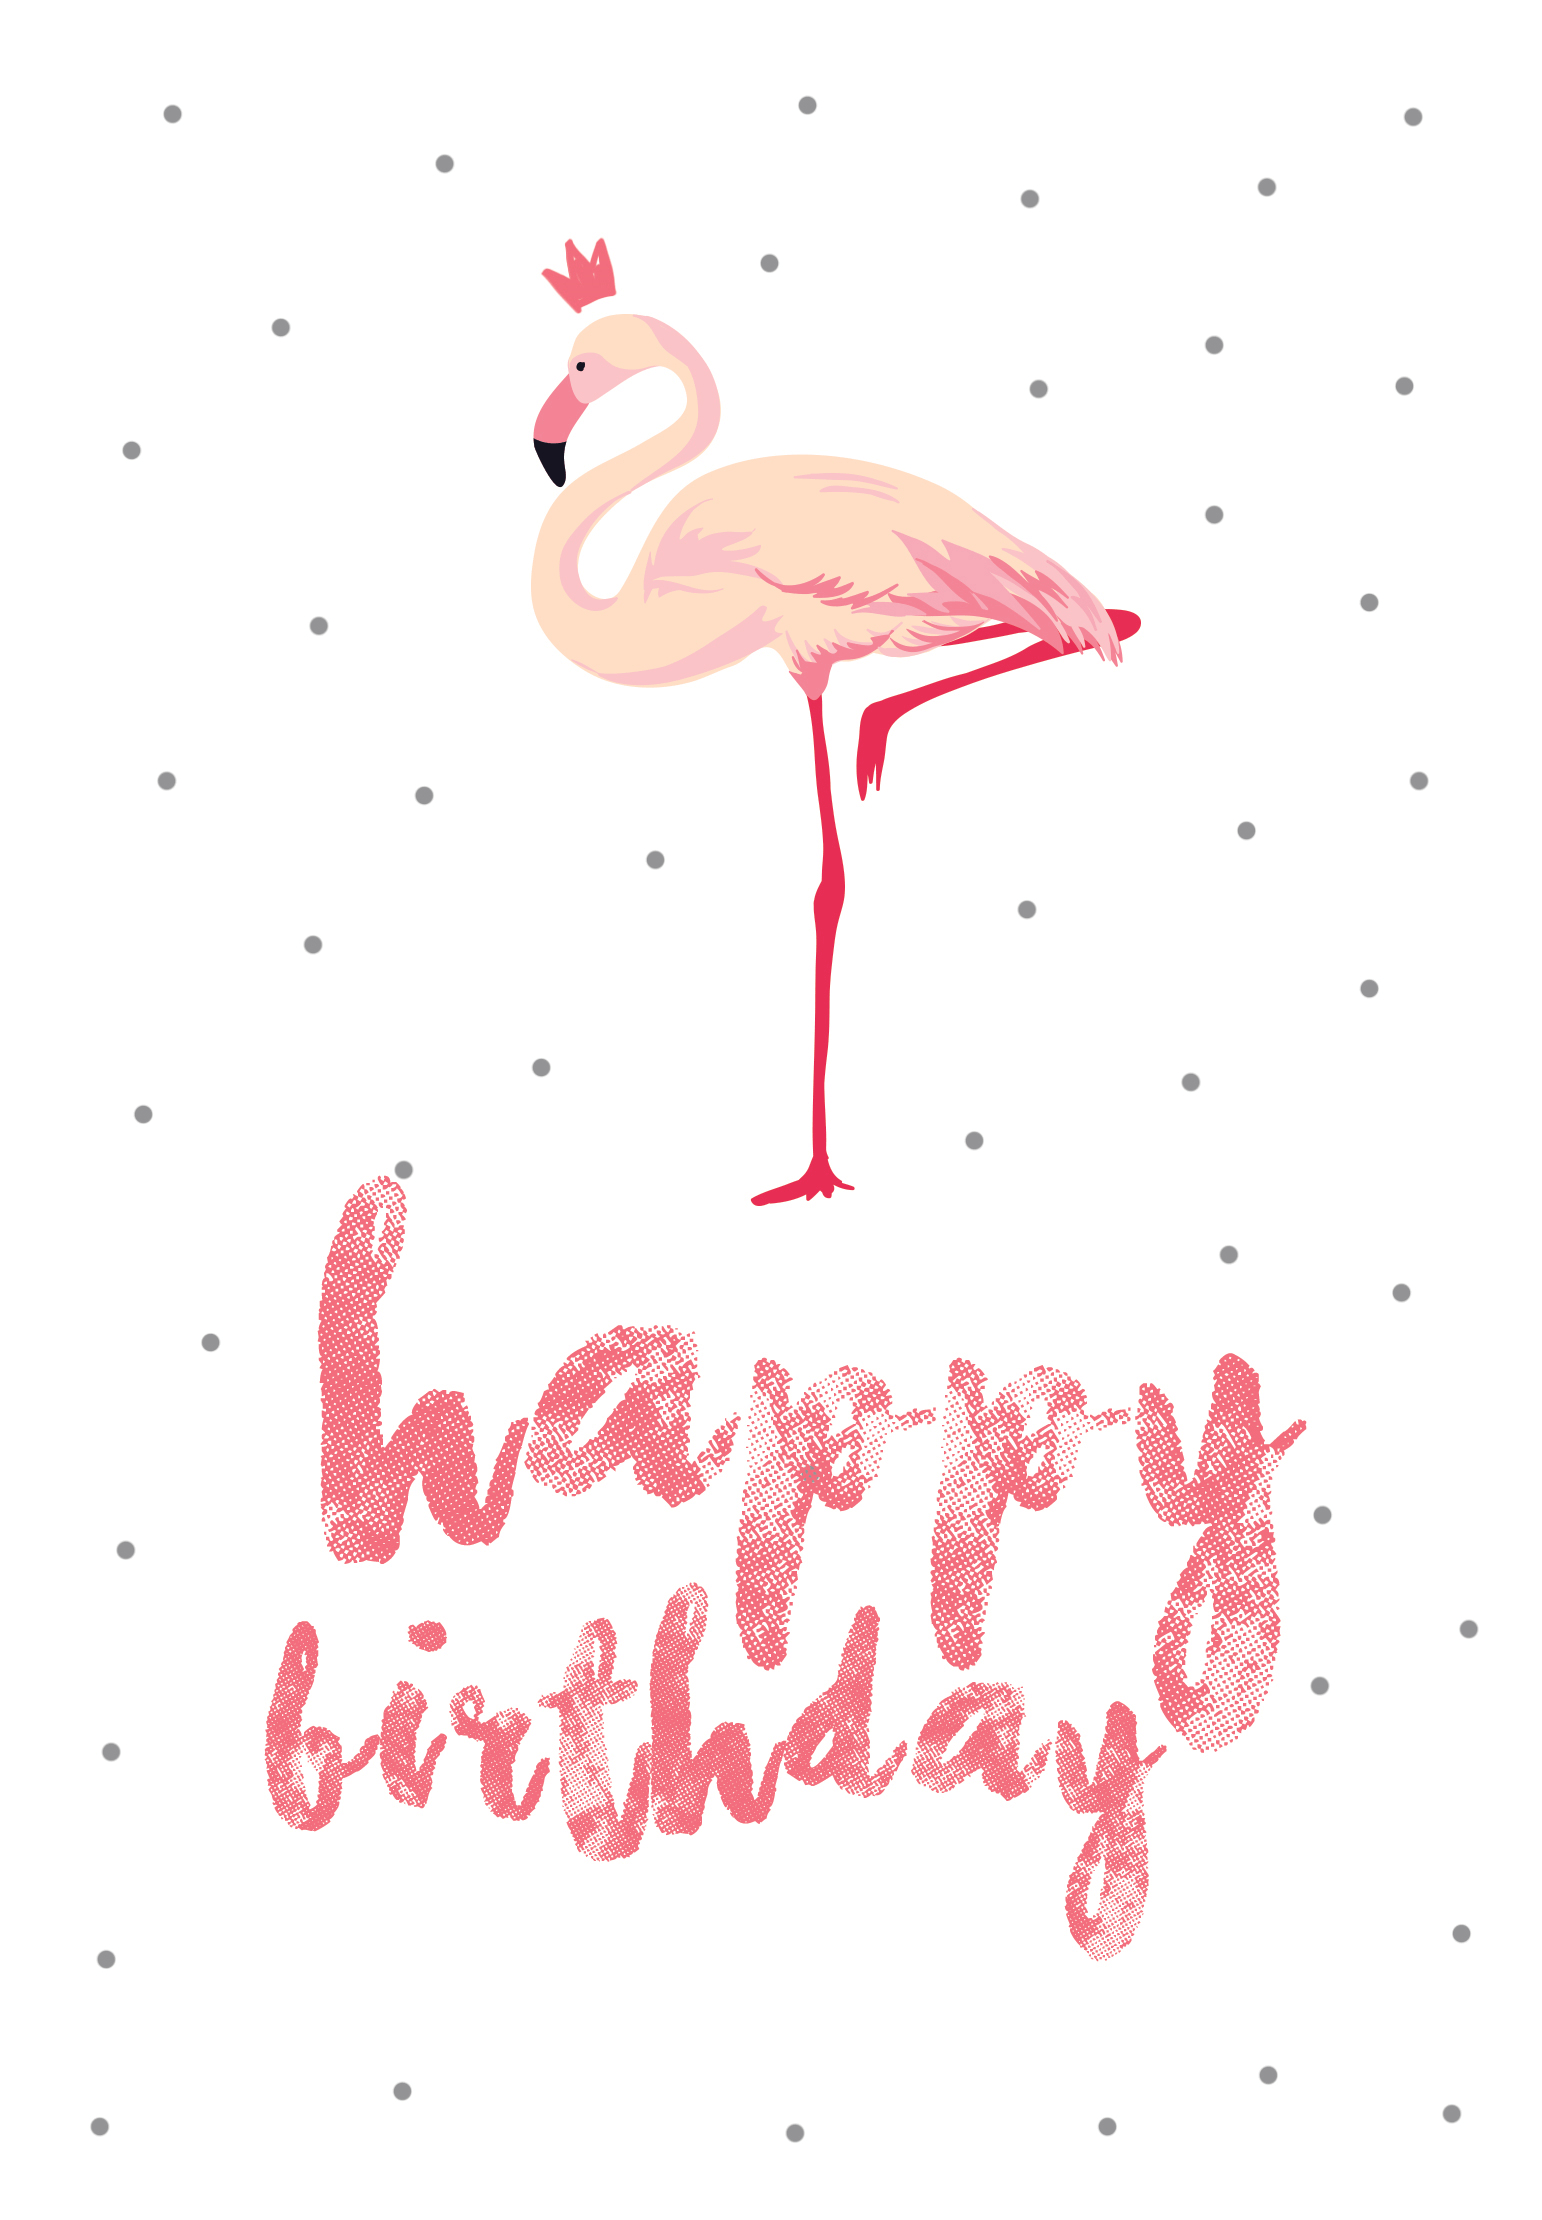 Flamingo Birthday - Free Printable Birthday Card | Greetings Island - Free Printable Birthday Cards For Her